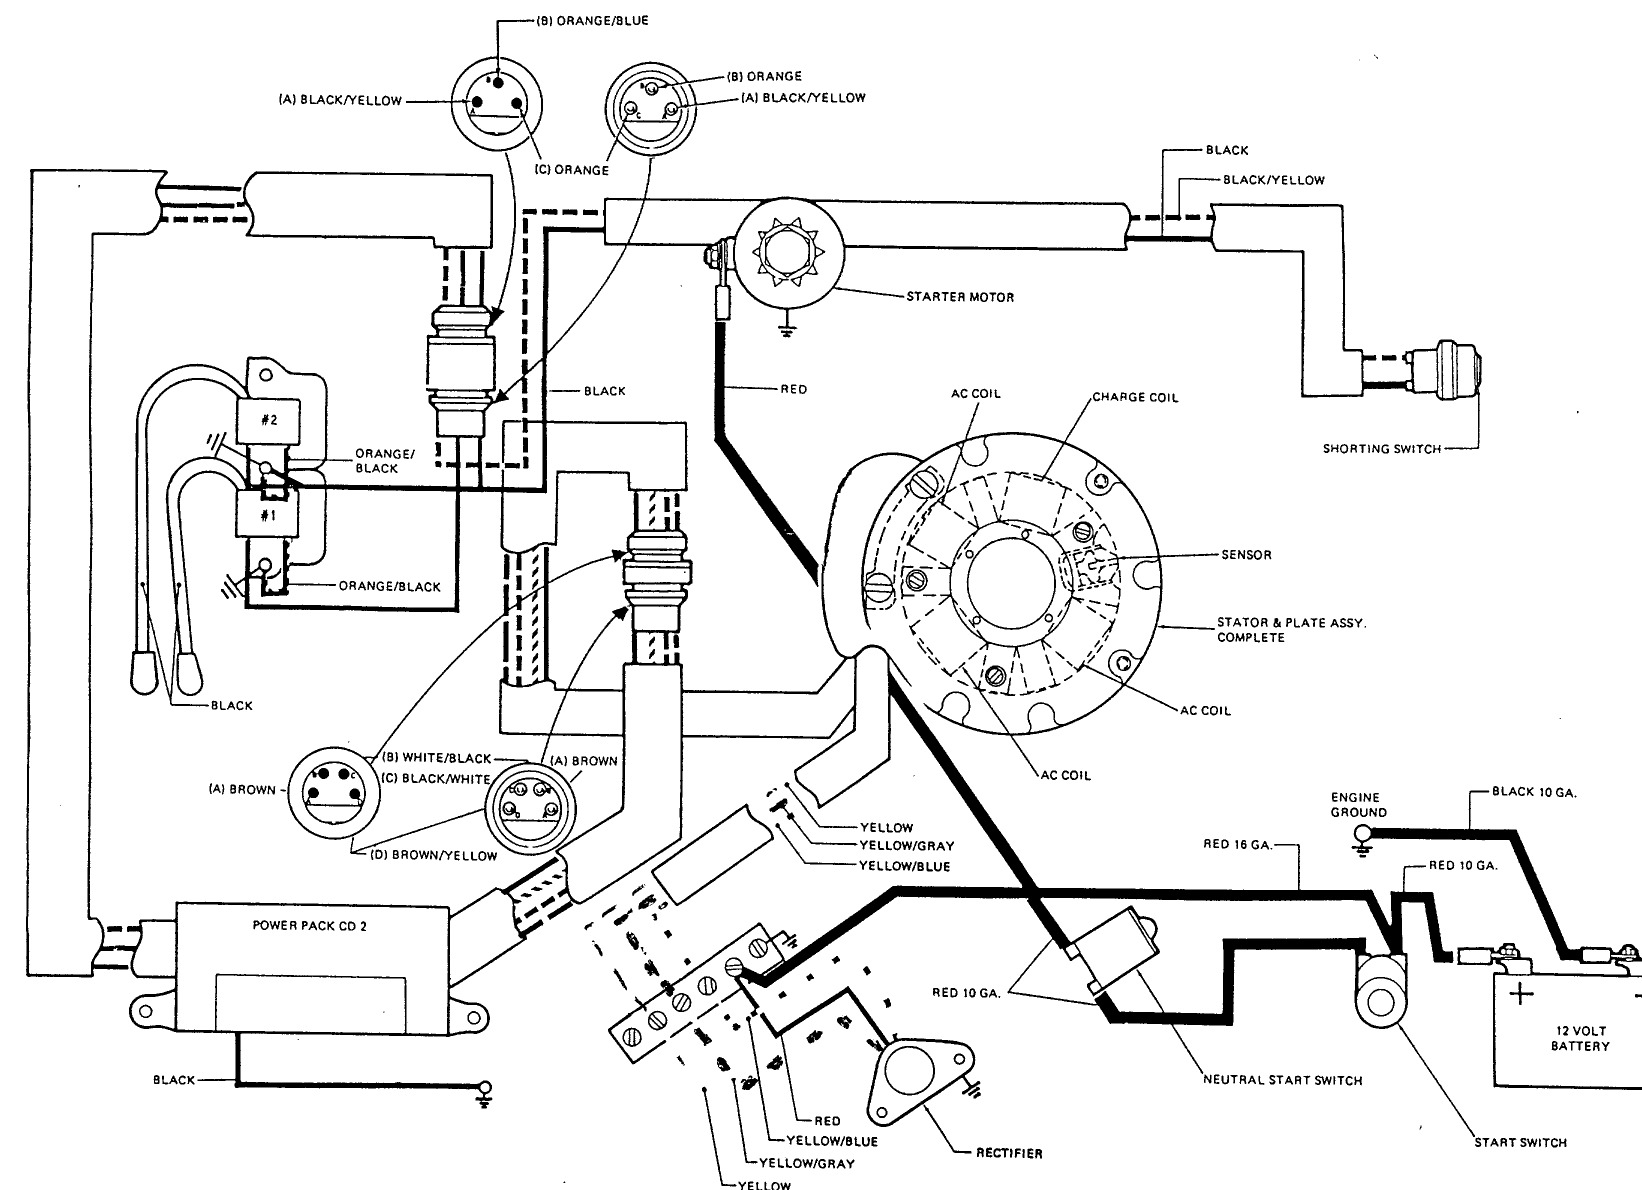 Mercury 110 Outboard Kill Switch Wiring Diagram. Mercury